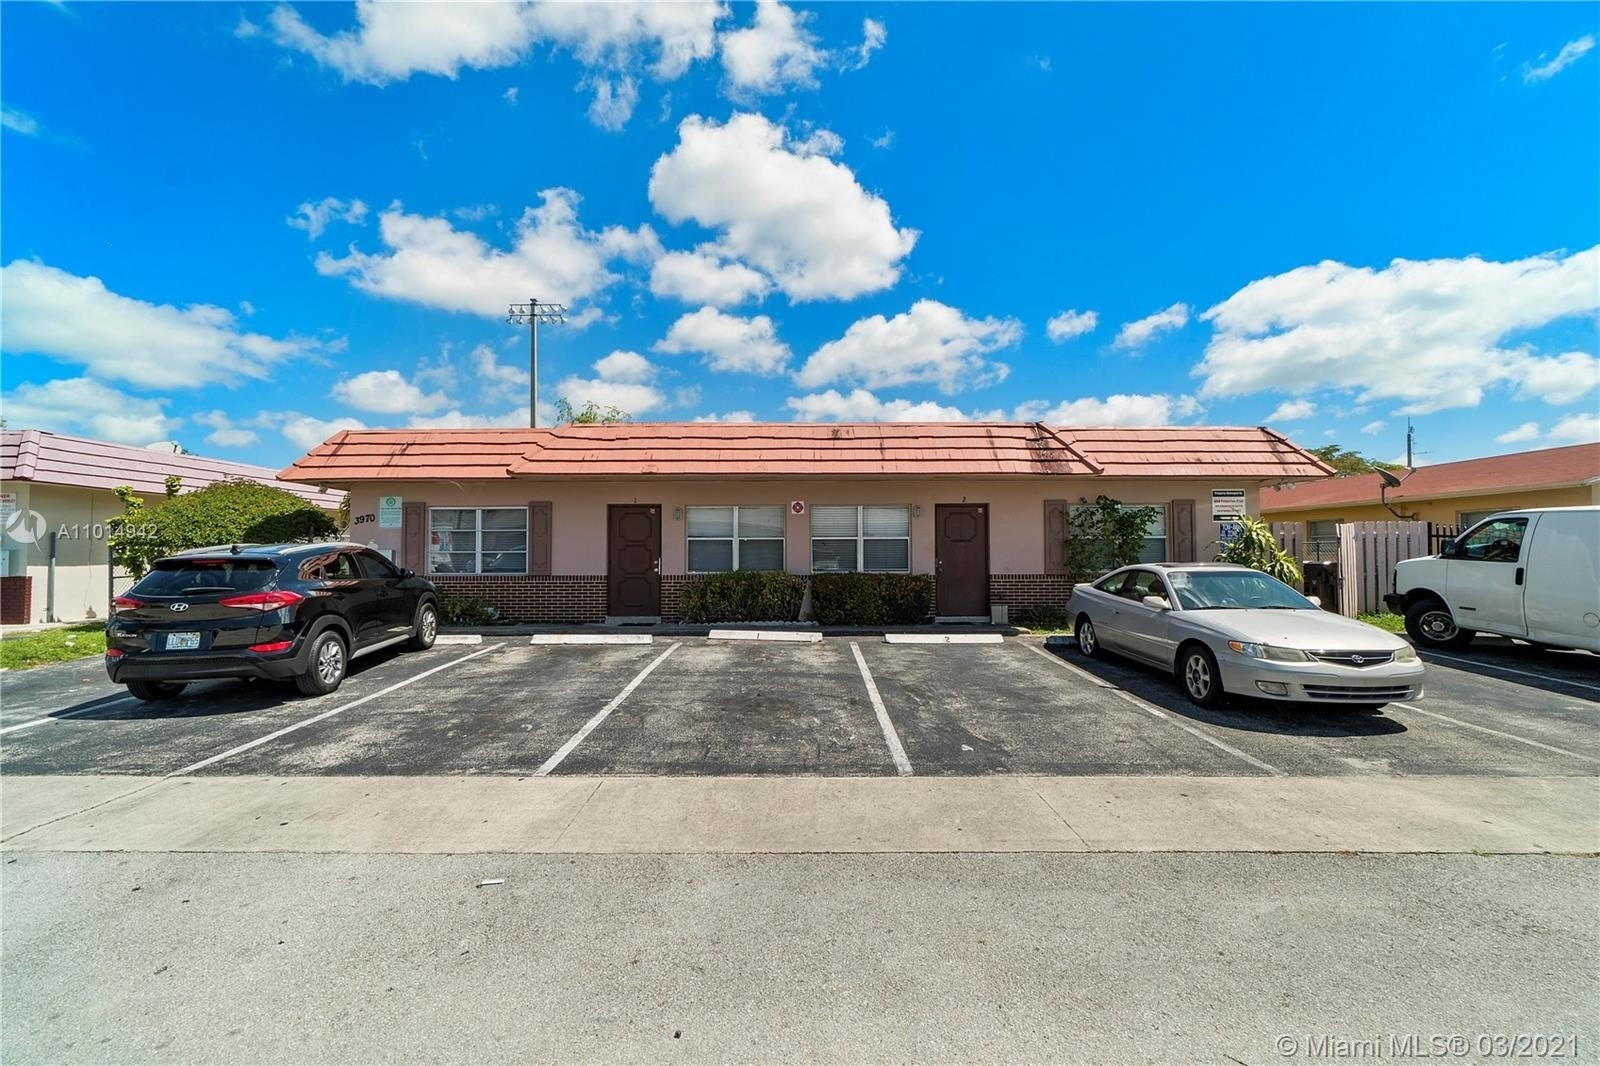 Commercial / Office for Sale at Oriole Estates, Lauderdale Lakes, FL 33309